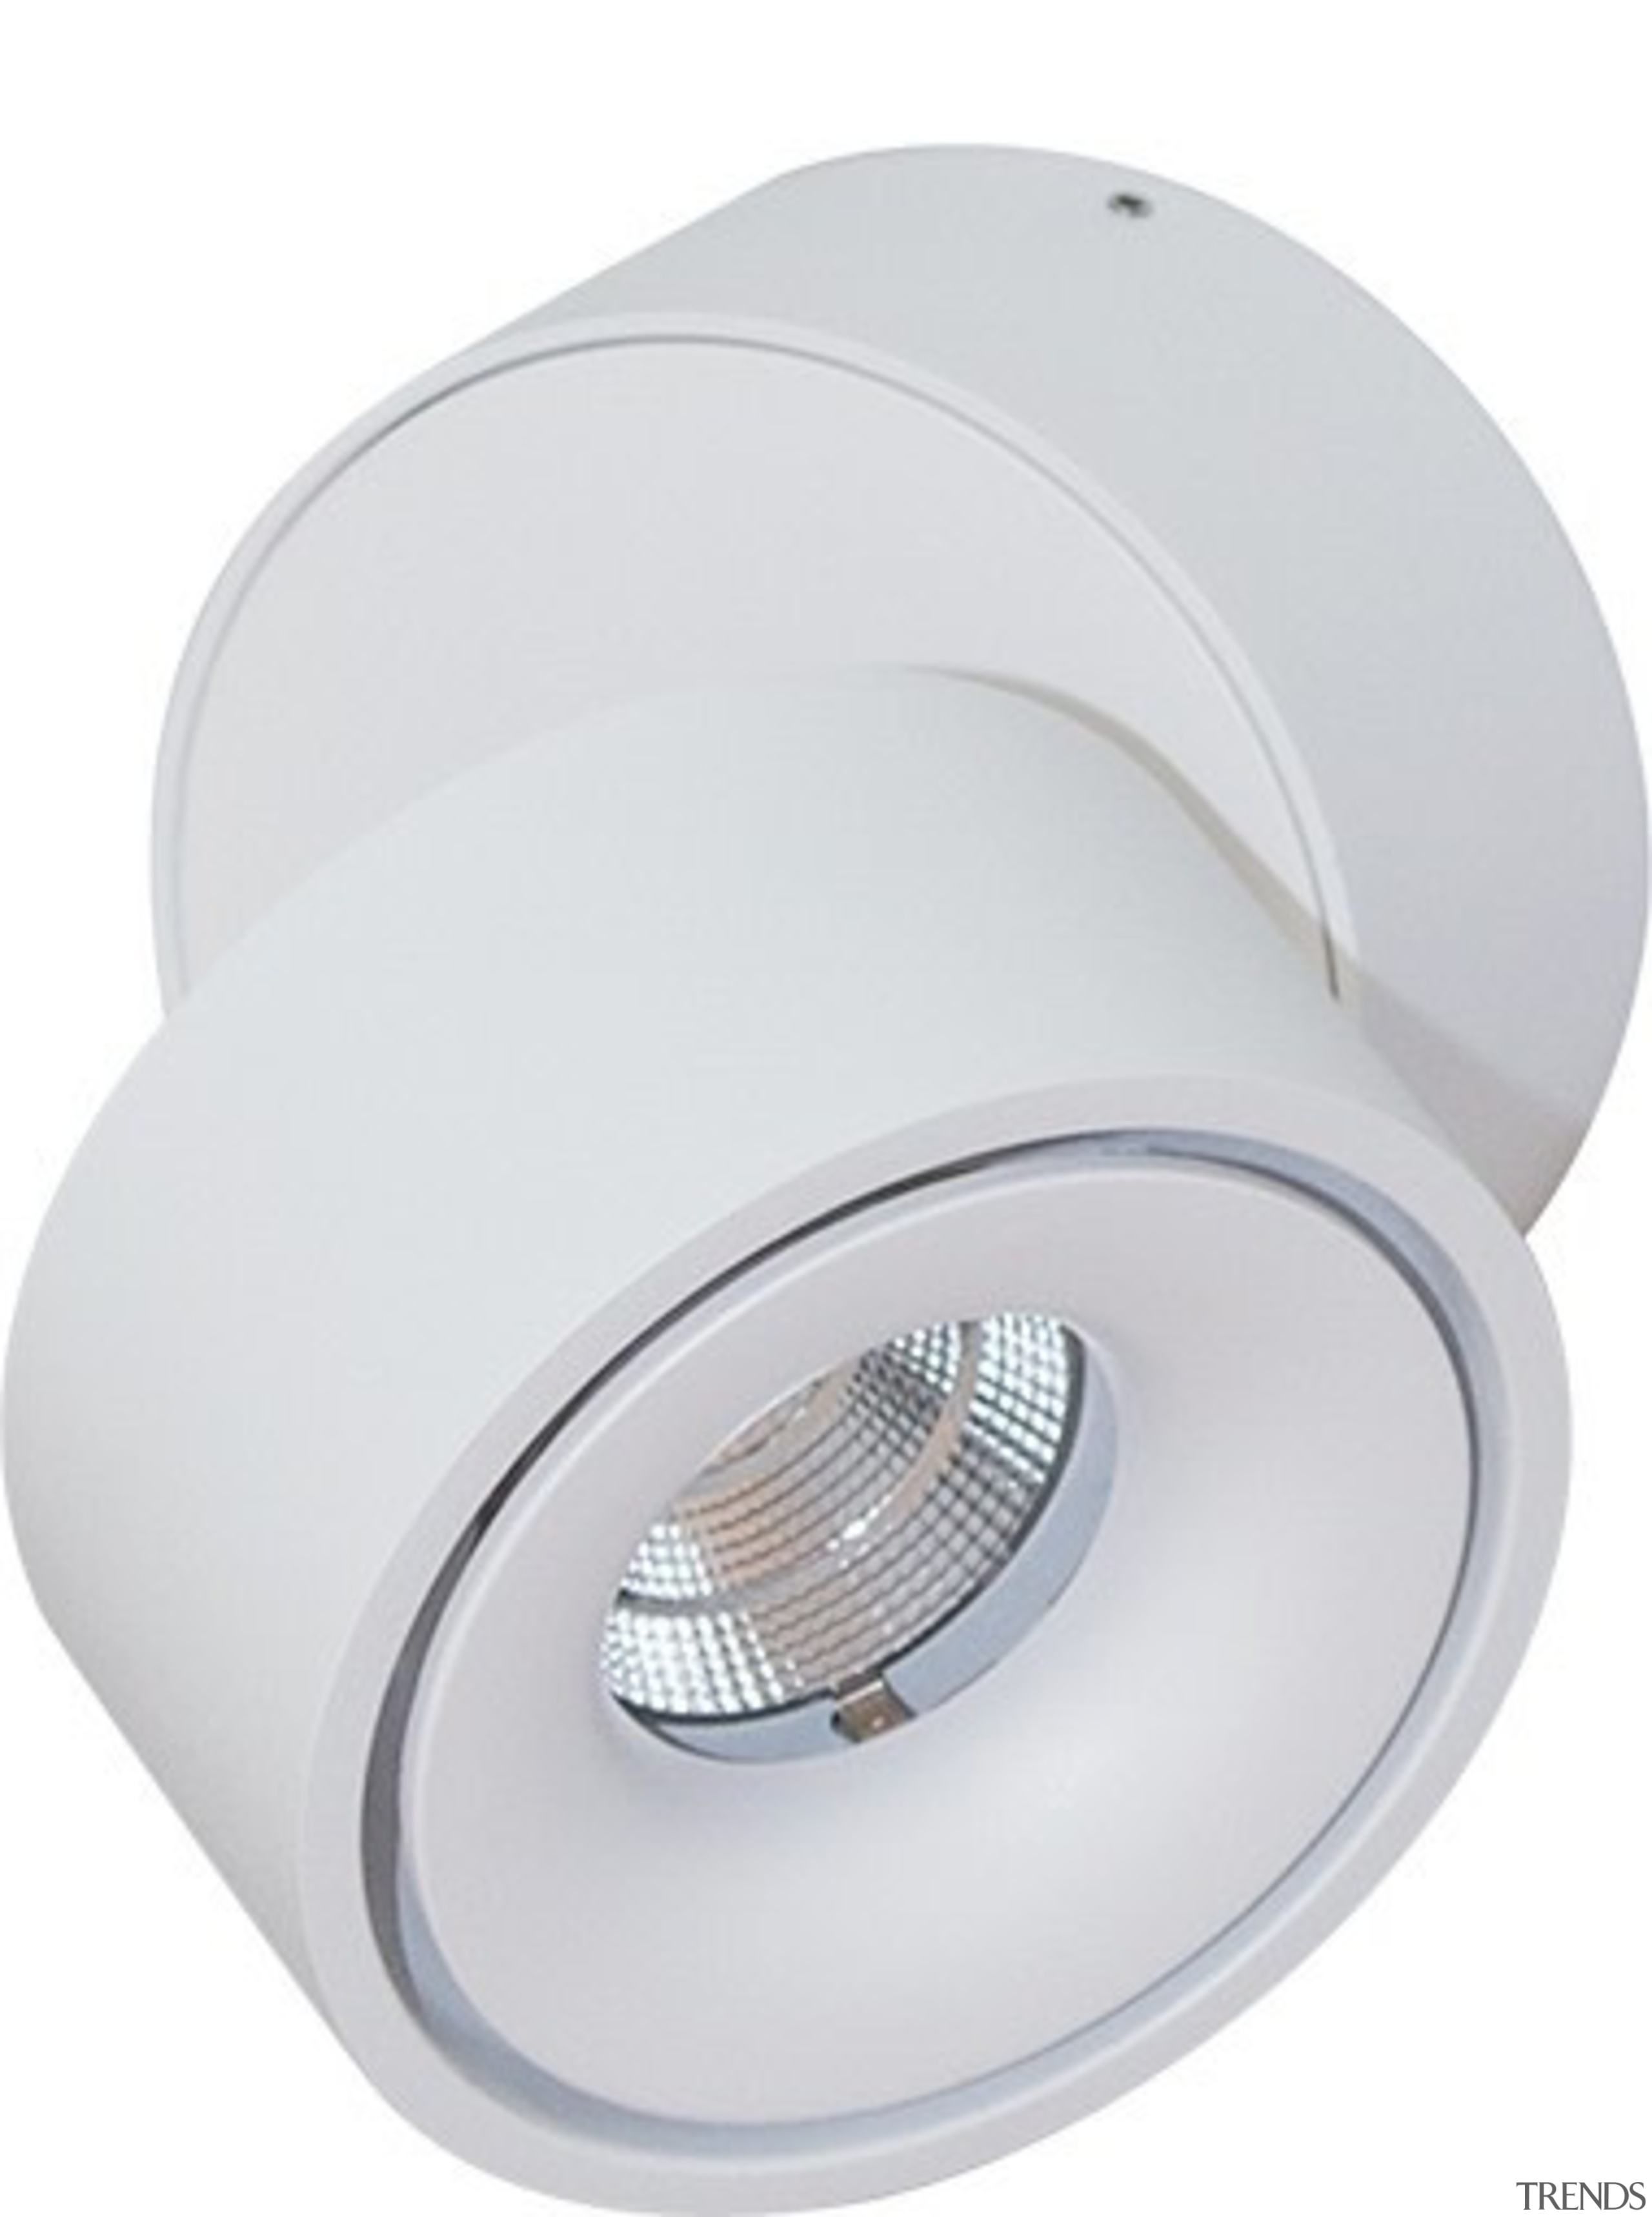 FeaturesThe Universal LED Spotlight is a unique and lighting, product, product design, white